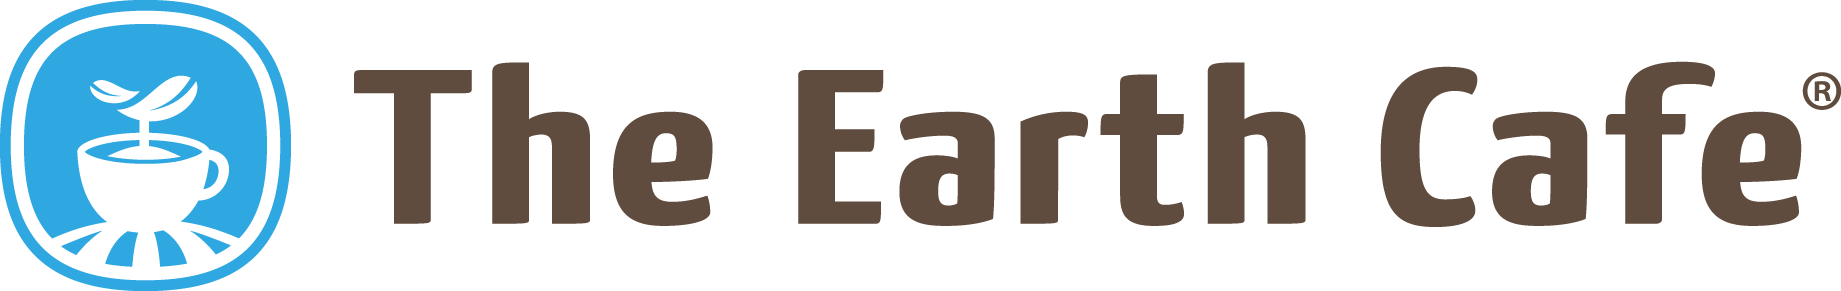 The Earth Cafe Association